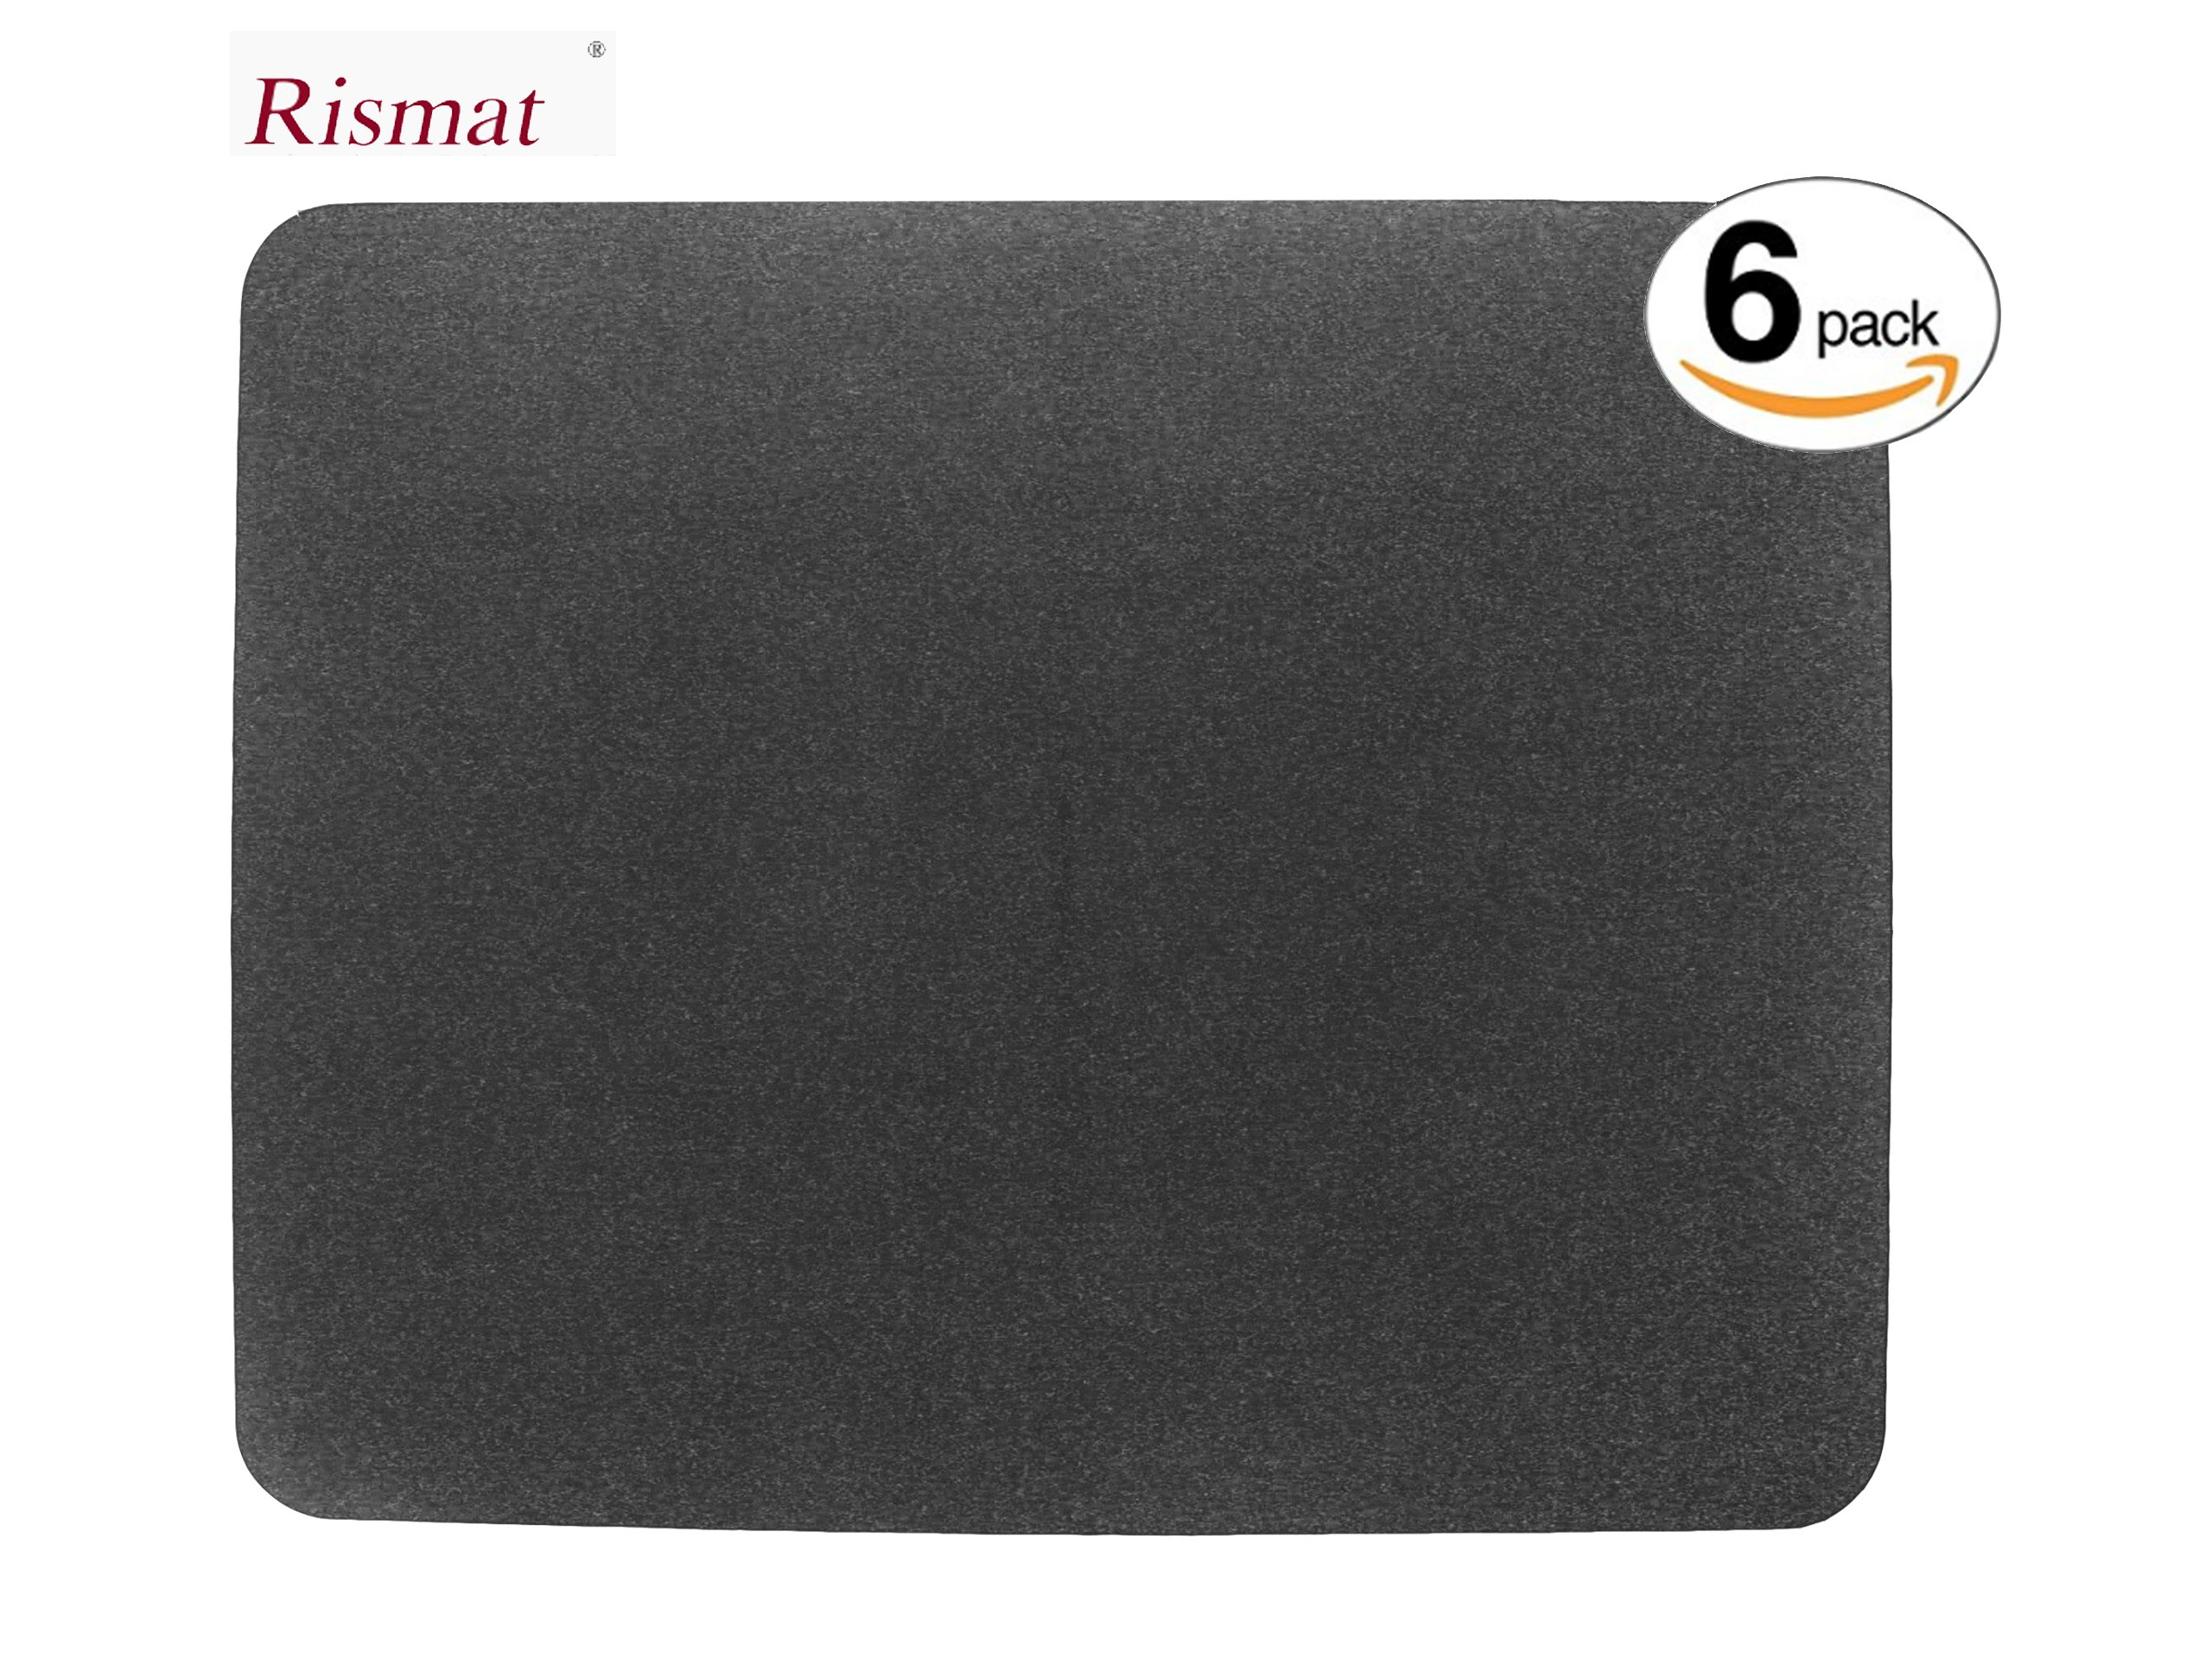 Urinal Mats (6-Pack) with Anti-Bacterial, Deodorization, Absorbency, Non-Slip, Grease-Proof Disposable Mats (Carbon Black)